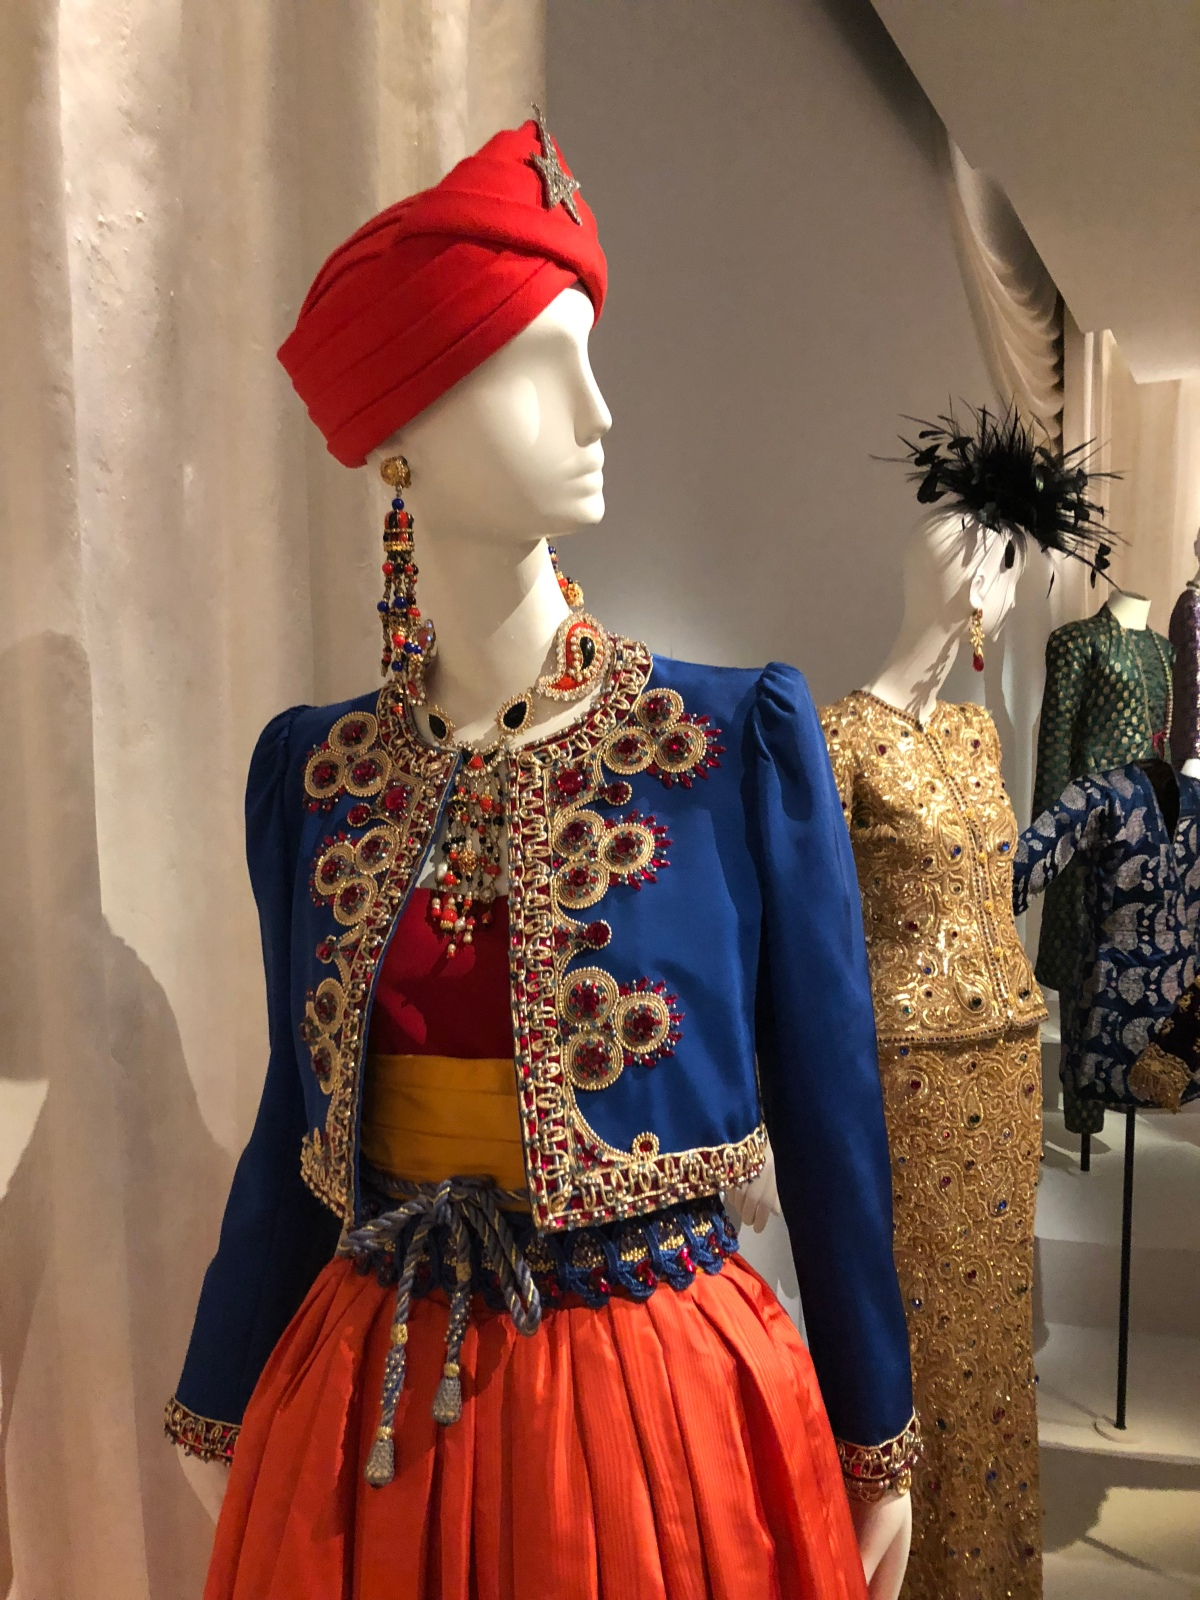 YSL:  The MUSEE inPARIS